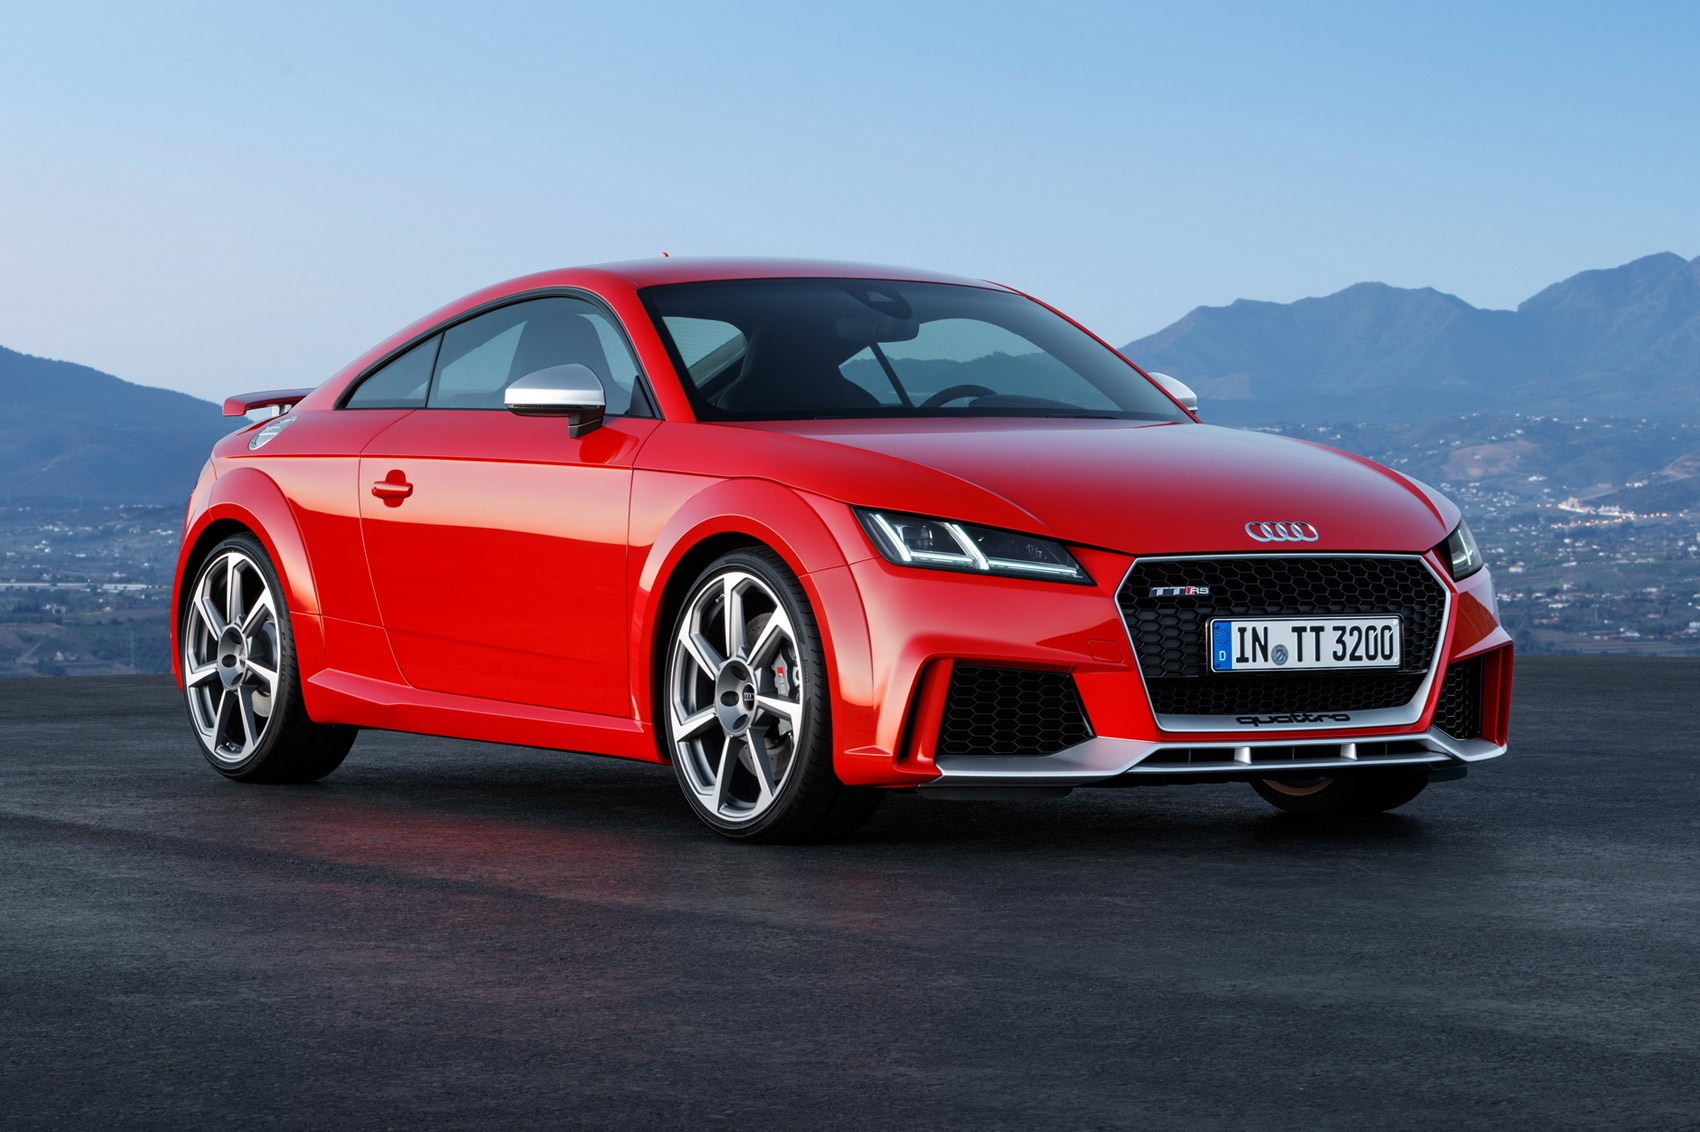 Audi Goes Porsche Hunting With New Bhp TT RS Coupe And Roadster - Audit car